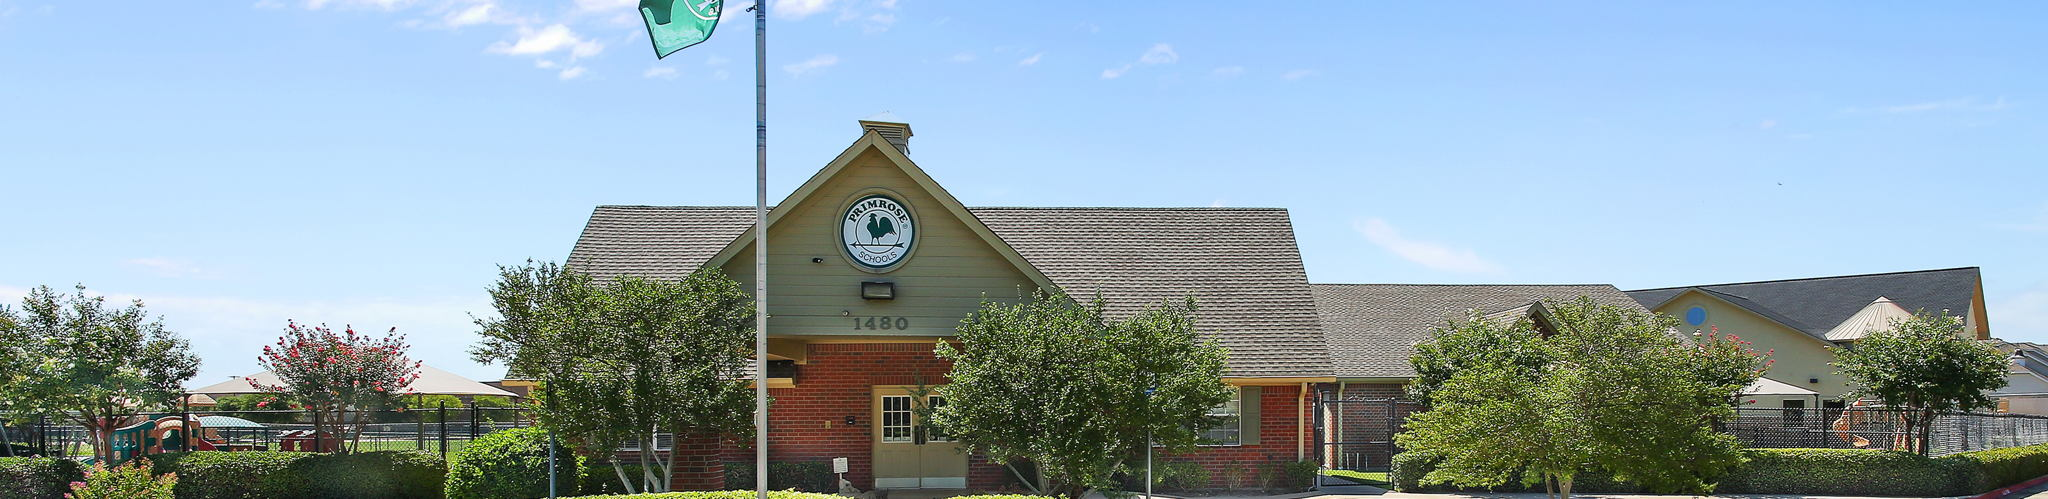 Exterior of a Primrose School of North Lewisville